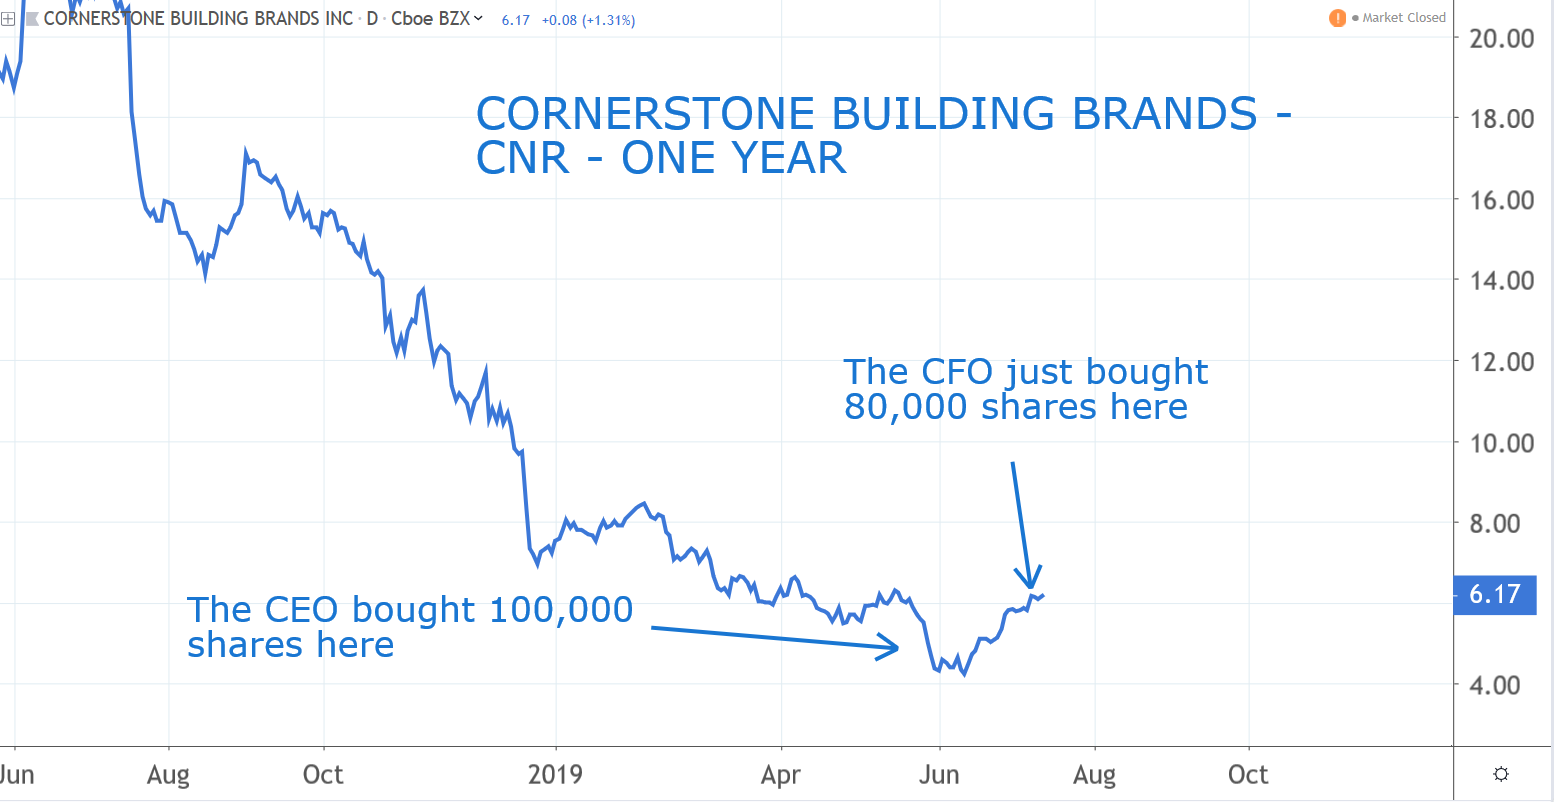 Insider Buying: Cornerstone Building Brands (CNR)